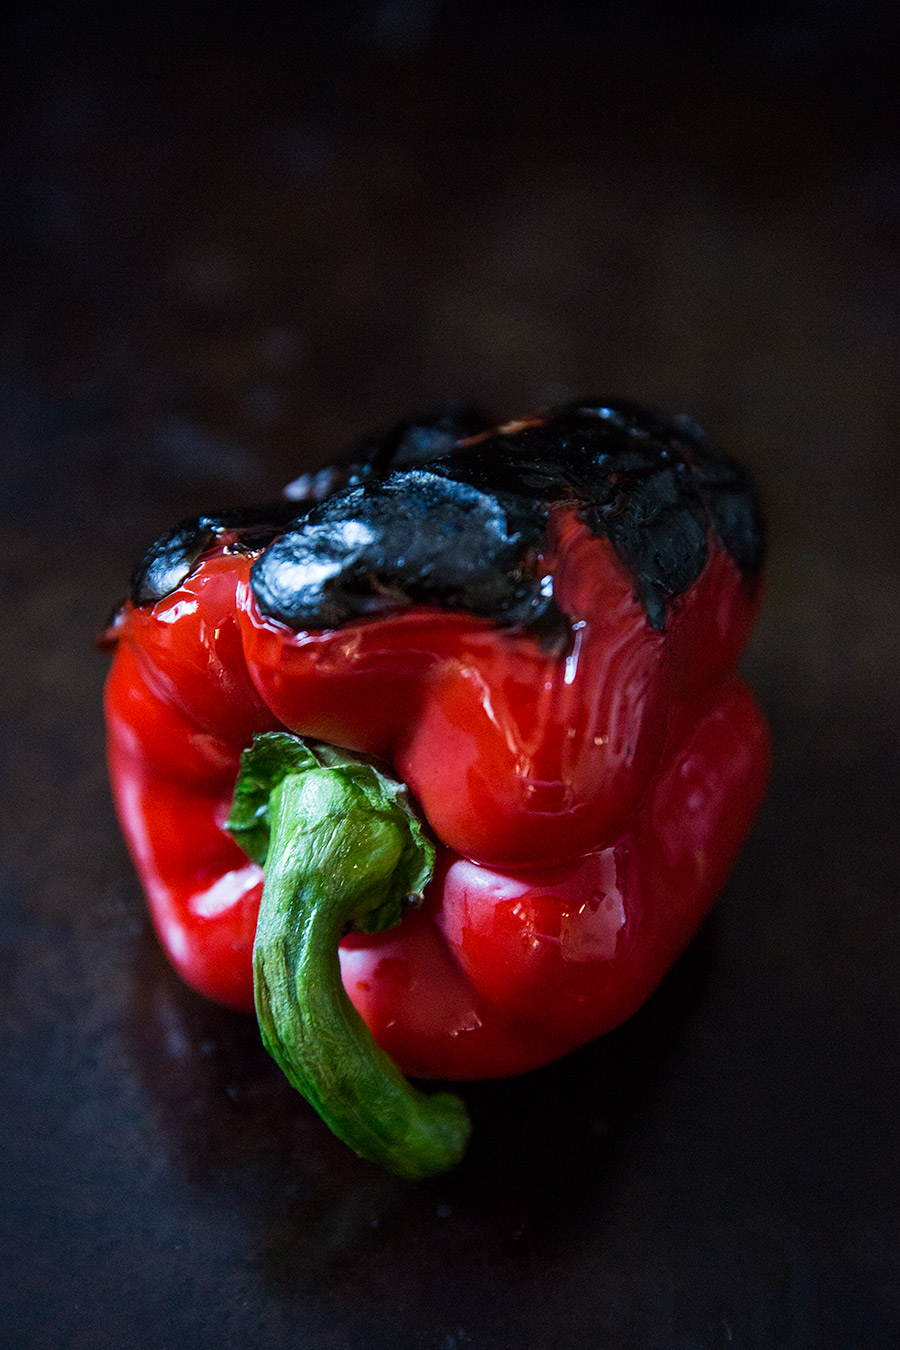 Roasted red pepper food photography from mortar-and-pestle.ca